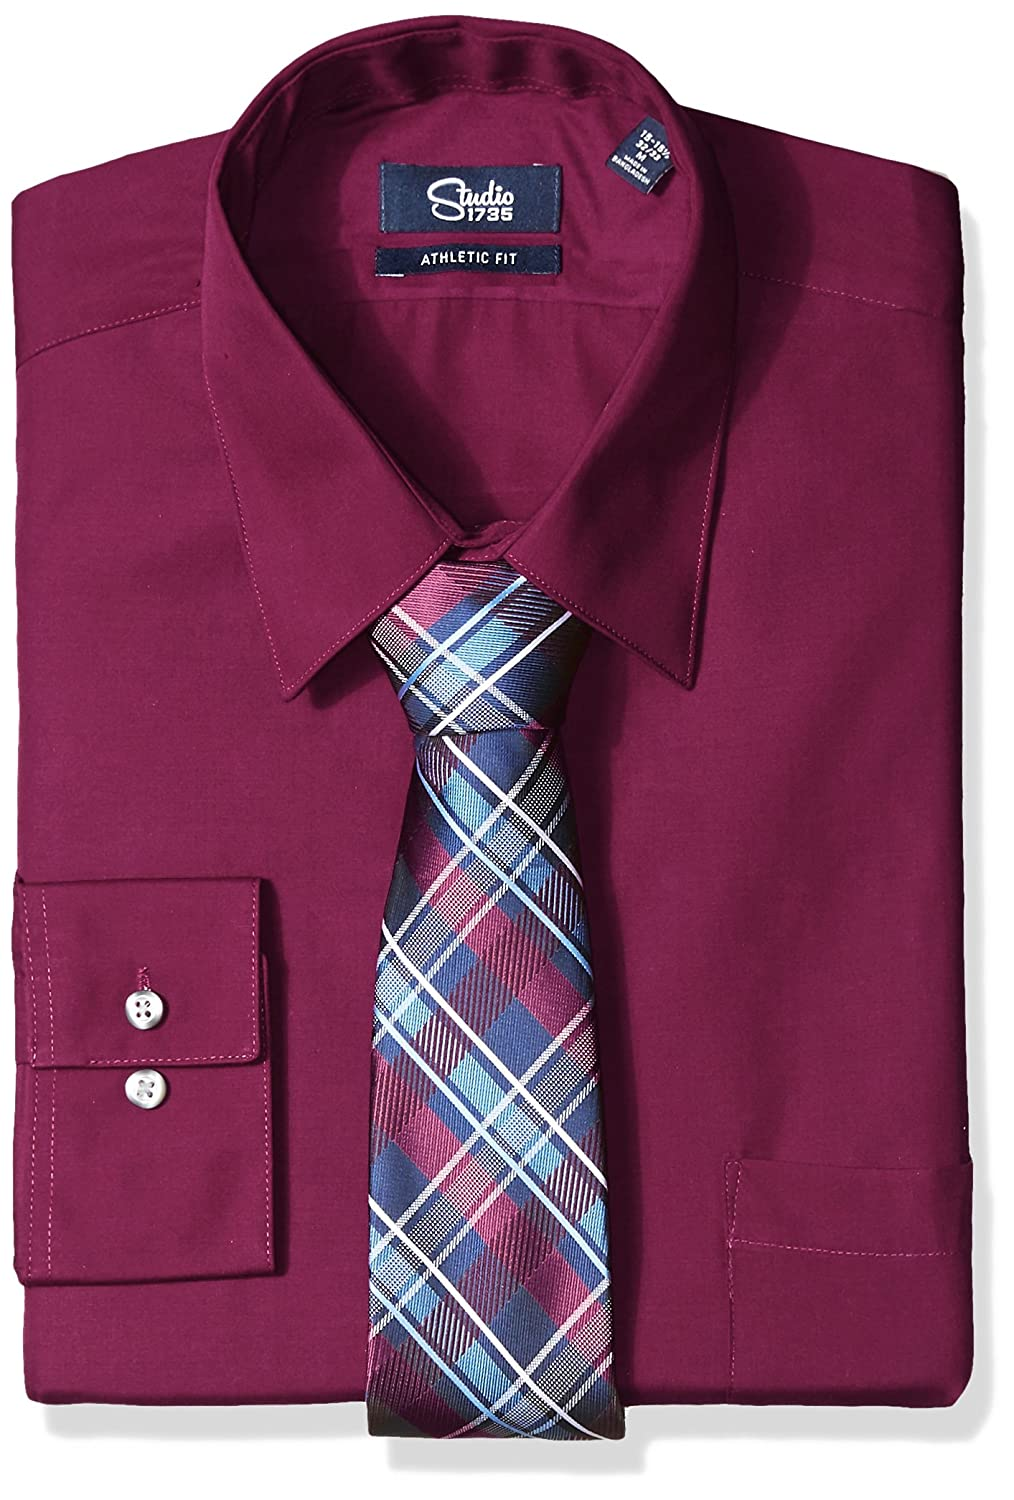 Studio 1735 Mens Dress Shirts And Tie Combo Plaid Tie Athletic Fit